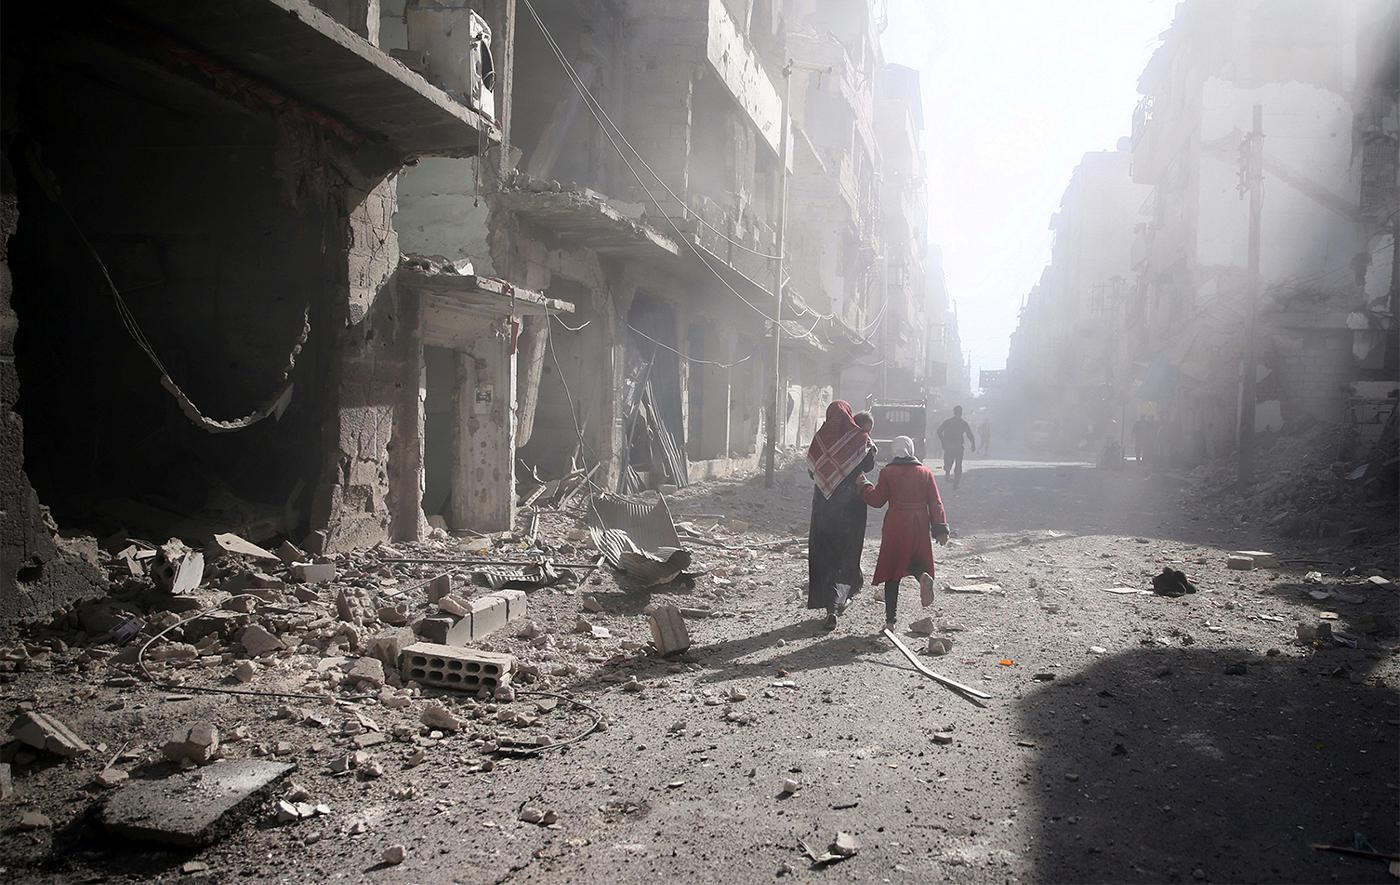 People walk past a damaged site after an airstrike in the besieged rebel-held town of Douma, eastern Ghouta in Damascus, November 2, 2016.